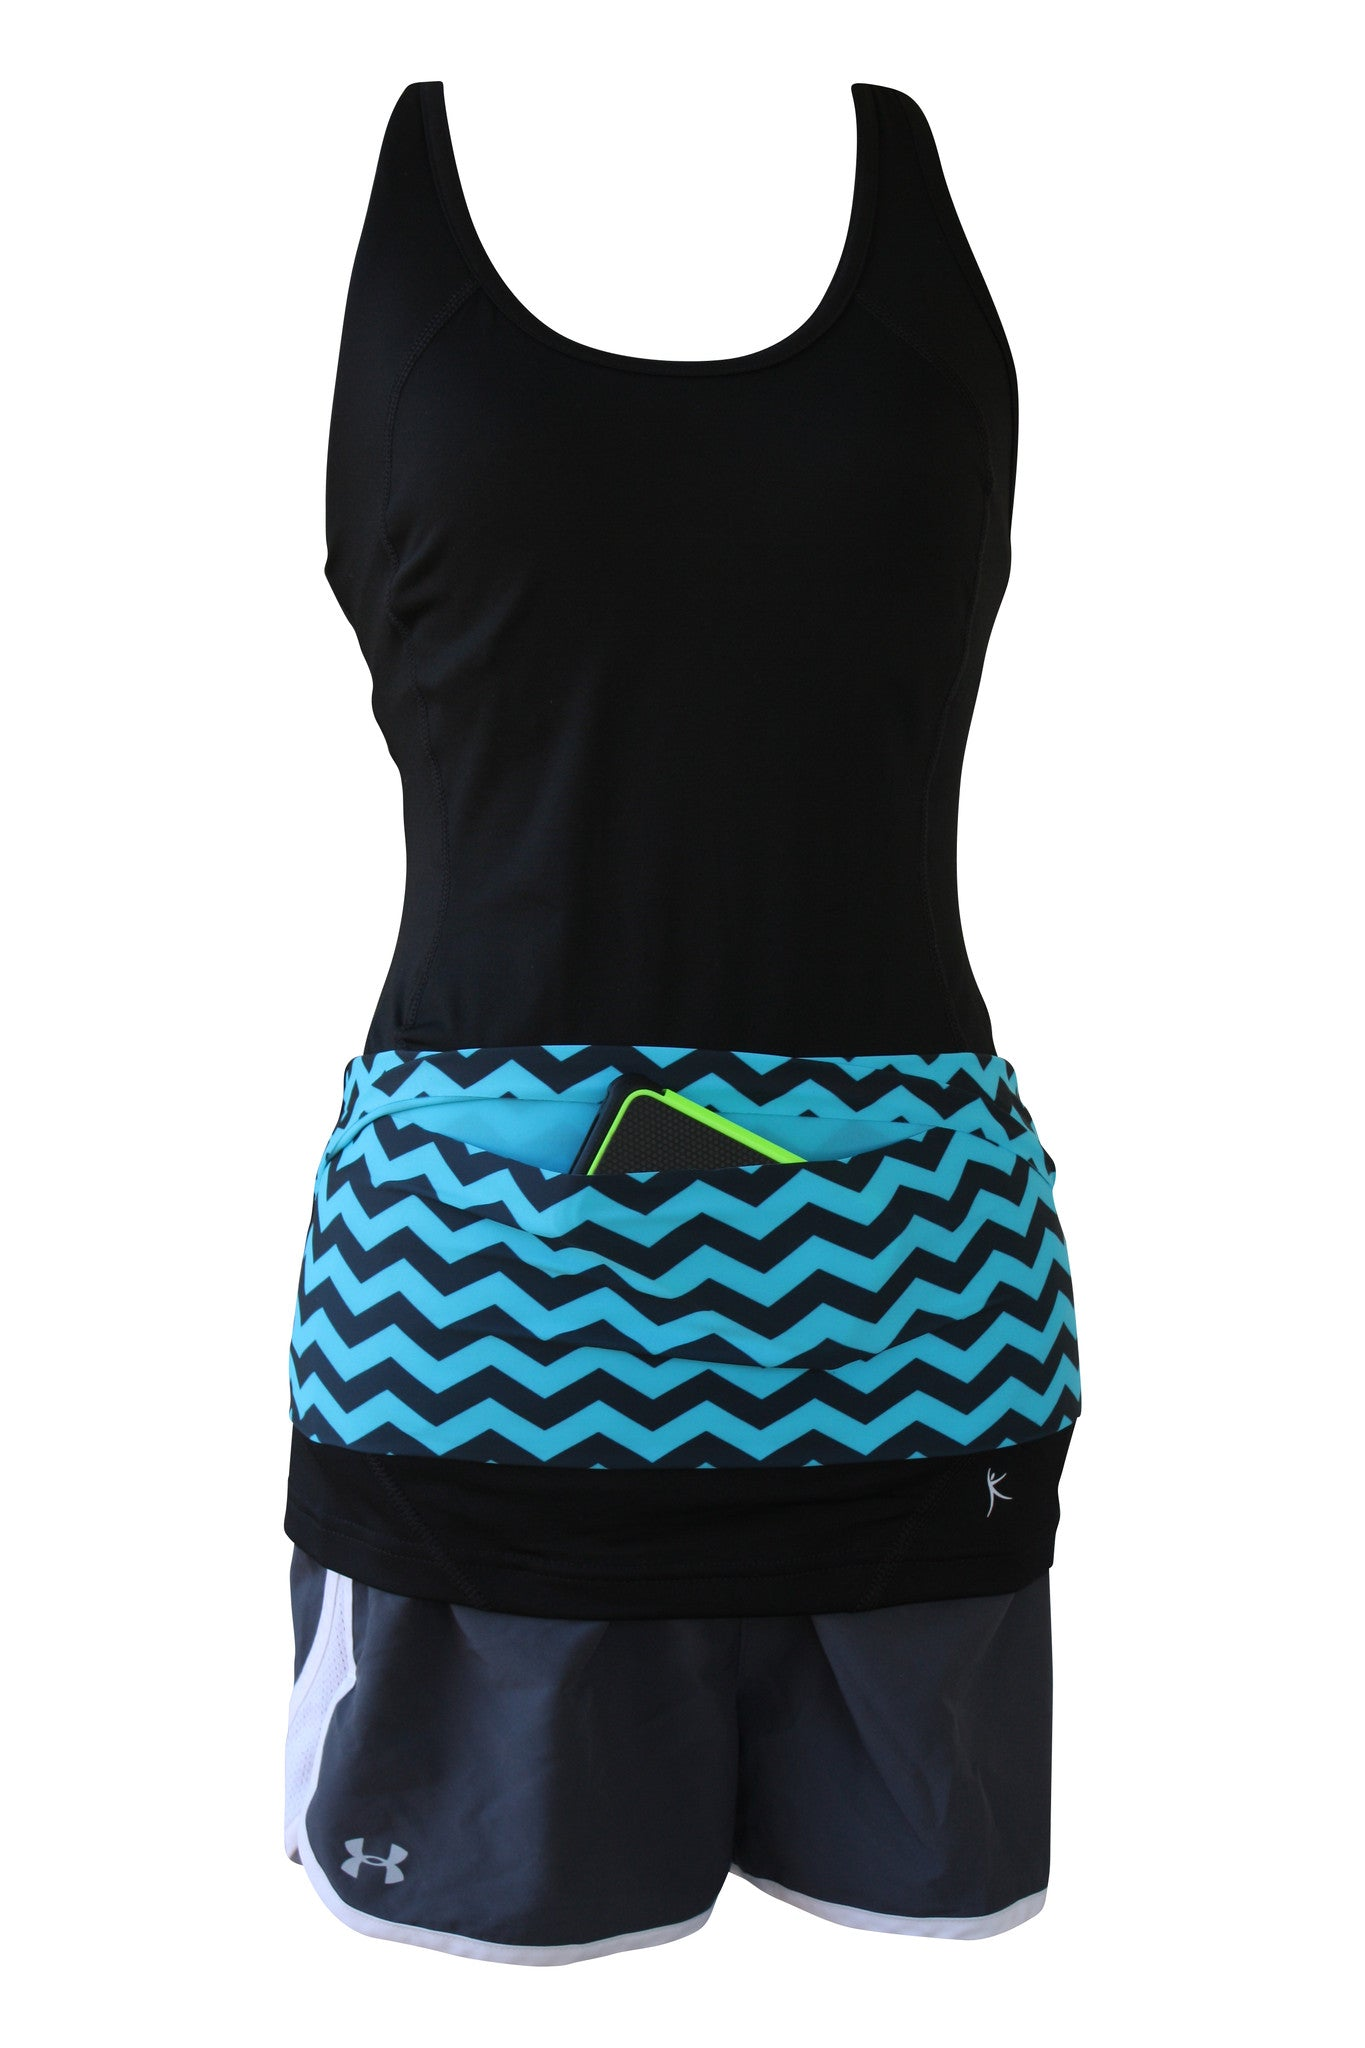 Electric Blue Chevron Running Belts - speedzter - 4